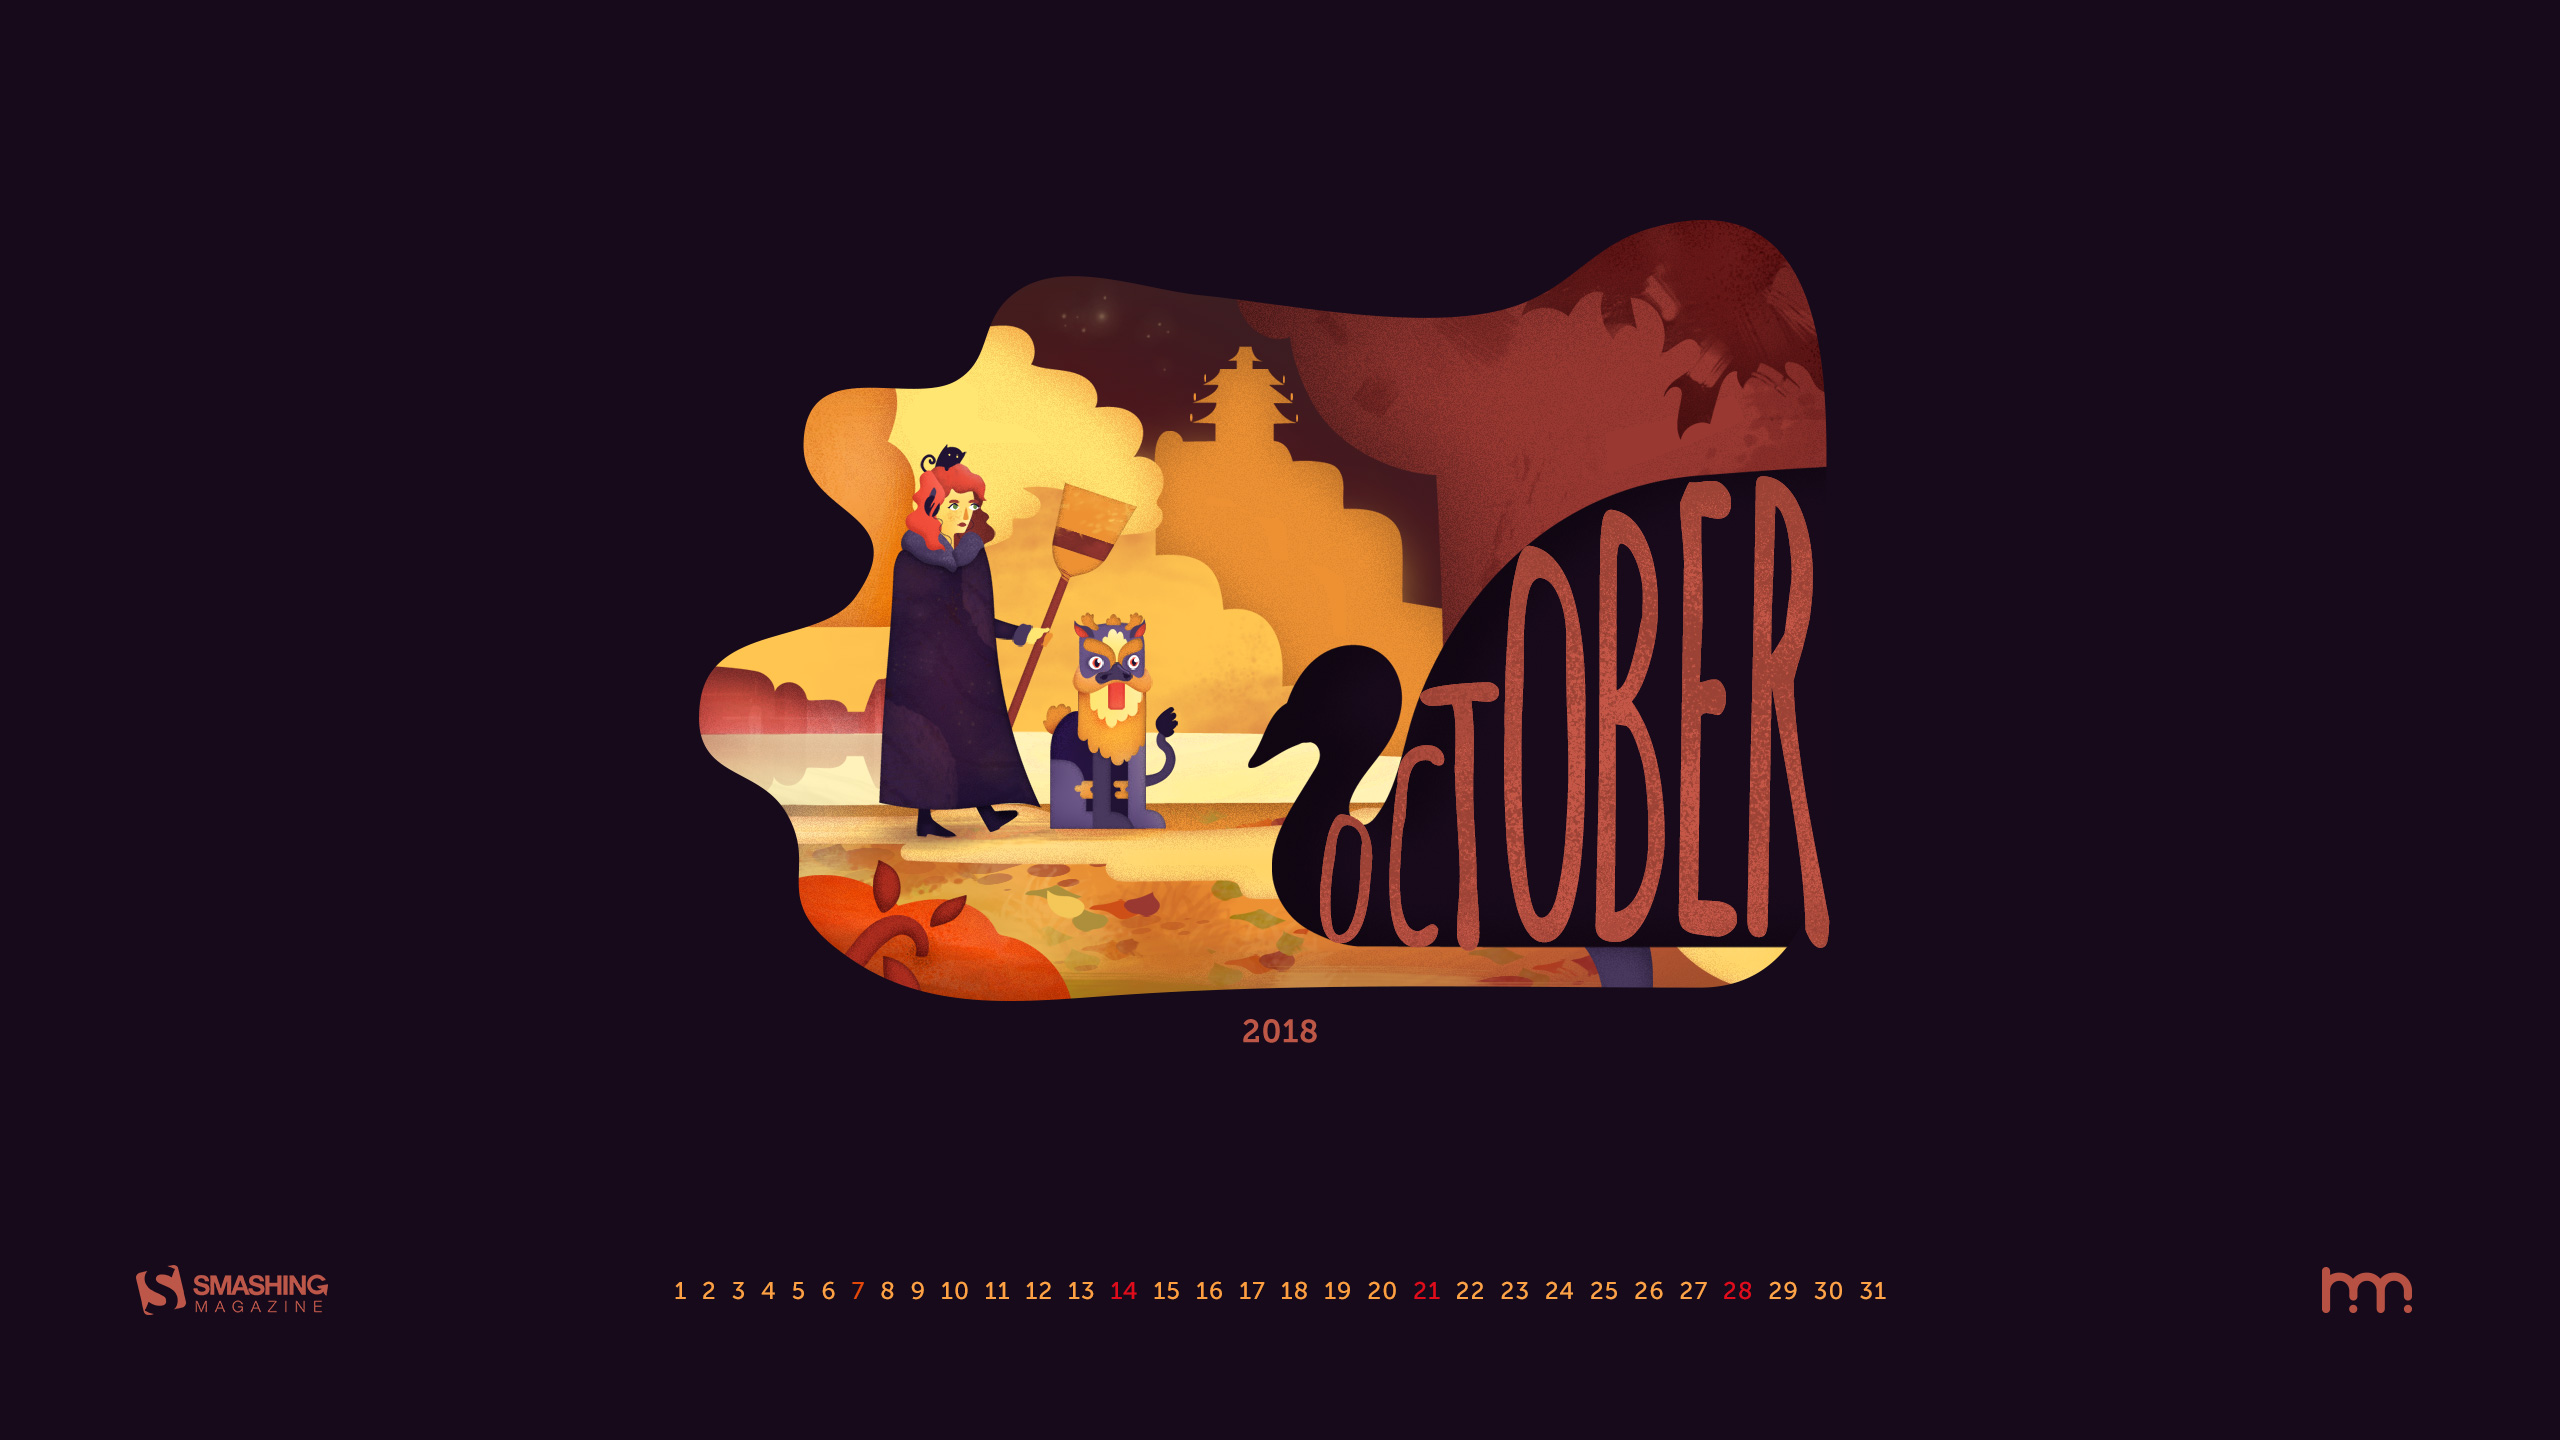 Strange October Journey Calendars Wallpaper 2018